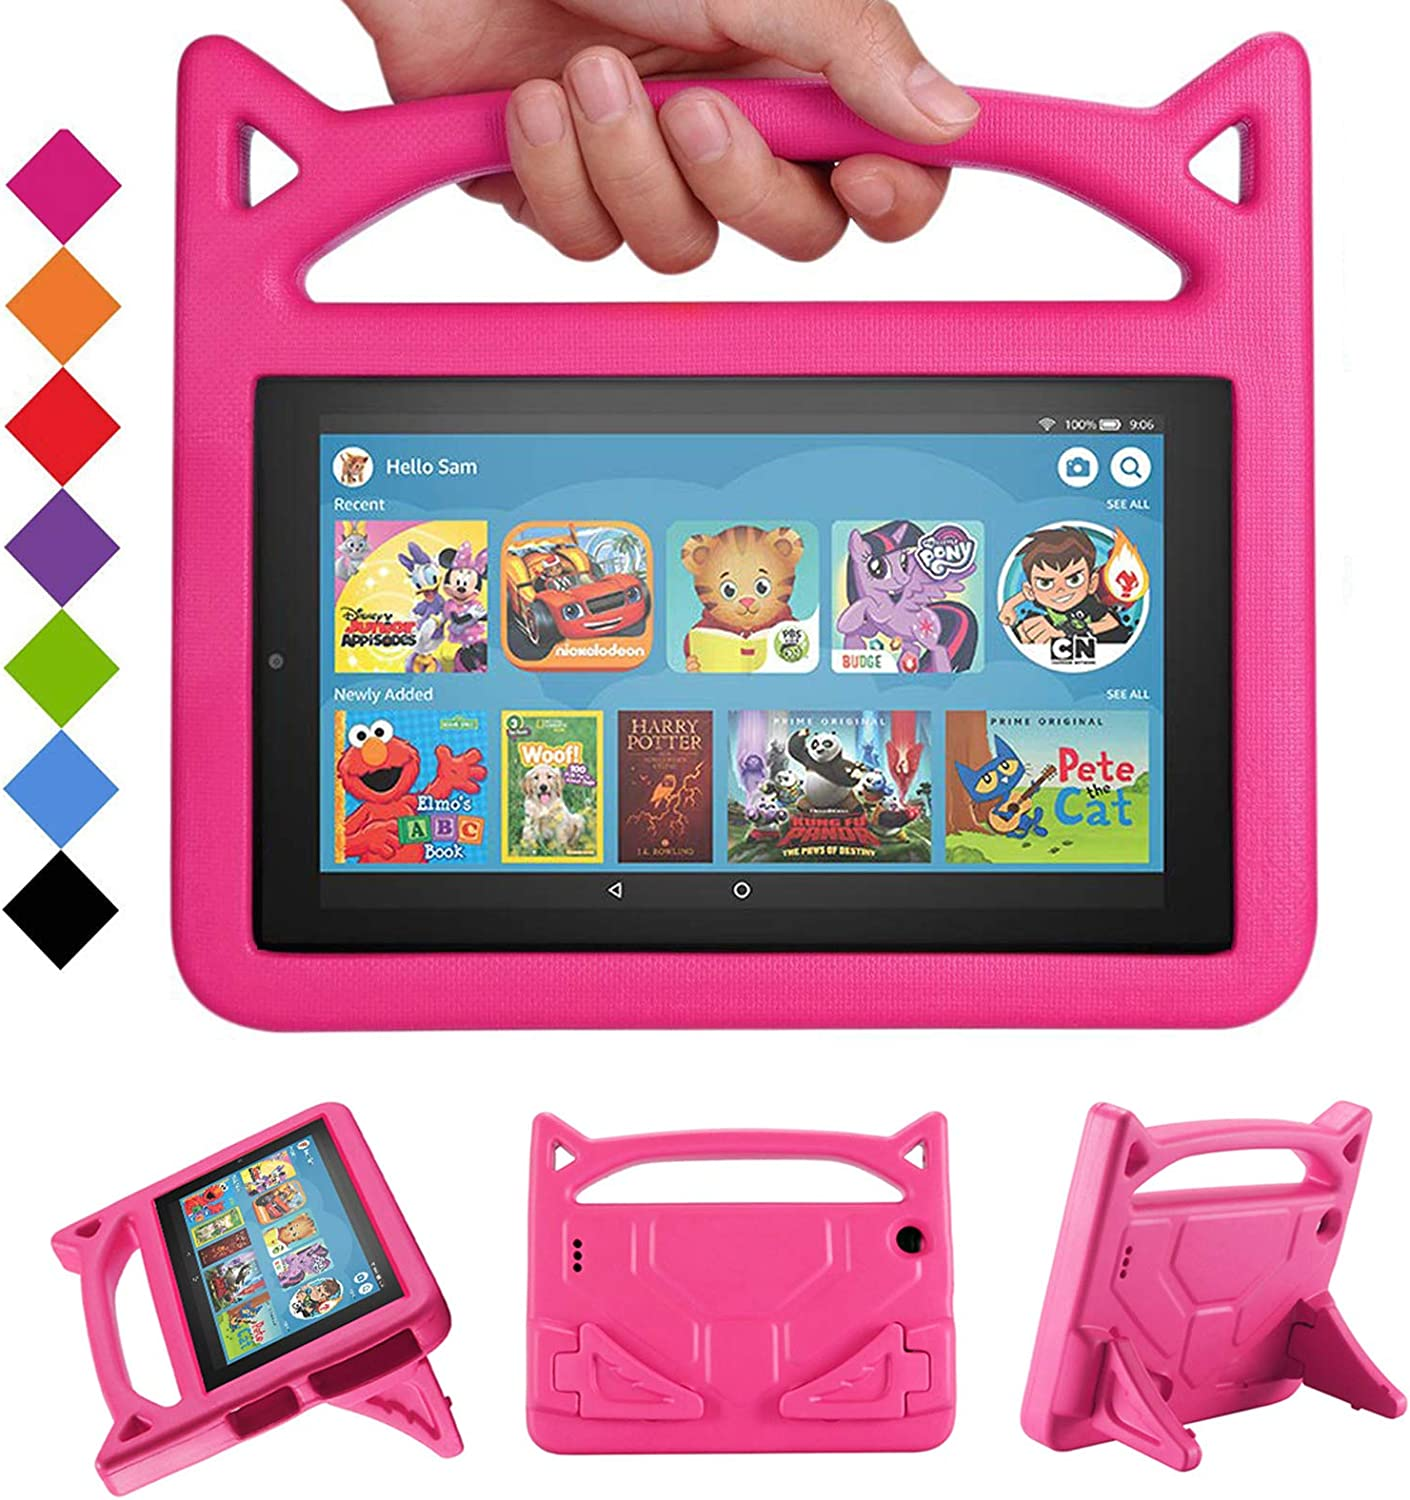 Amazon Com 2019 Fire 7 Tablet Case For Kids Shreborn Kids Shock Proof Case Cover With Handle And Stand For Amazon Kindle Fire 7 Inch Tablet Compatible With 9th 7th 5th Generation 2019 2017 2015 Release Rose Electronics